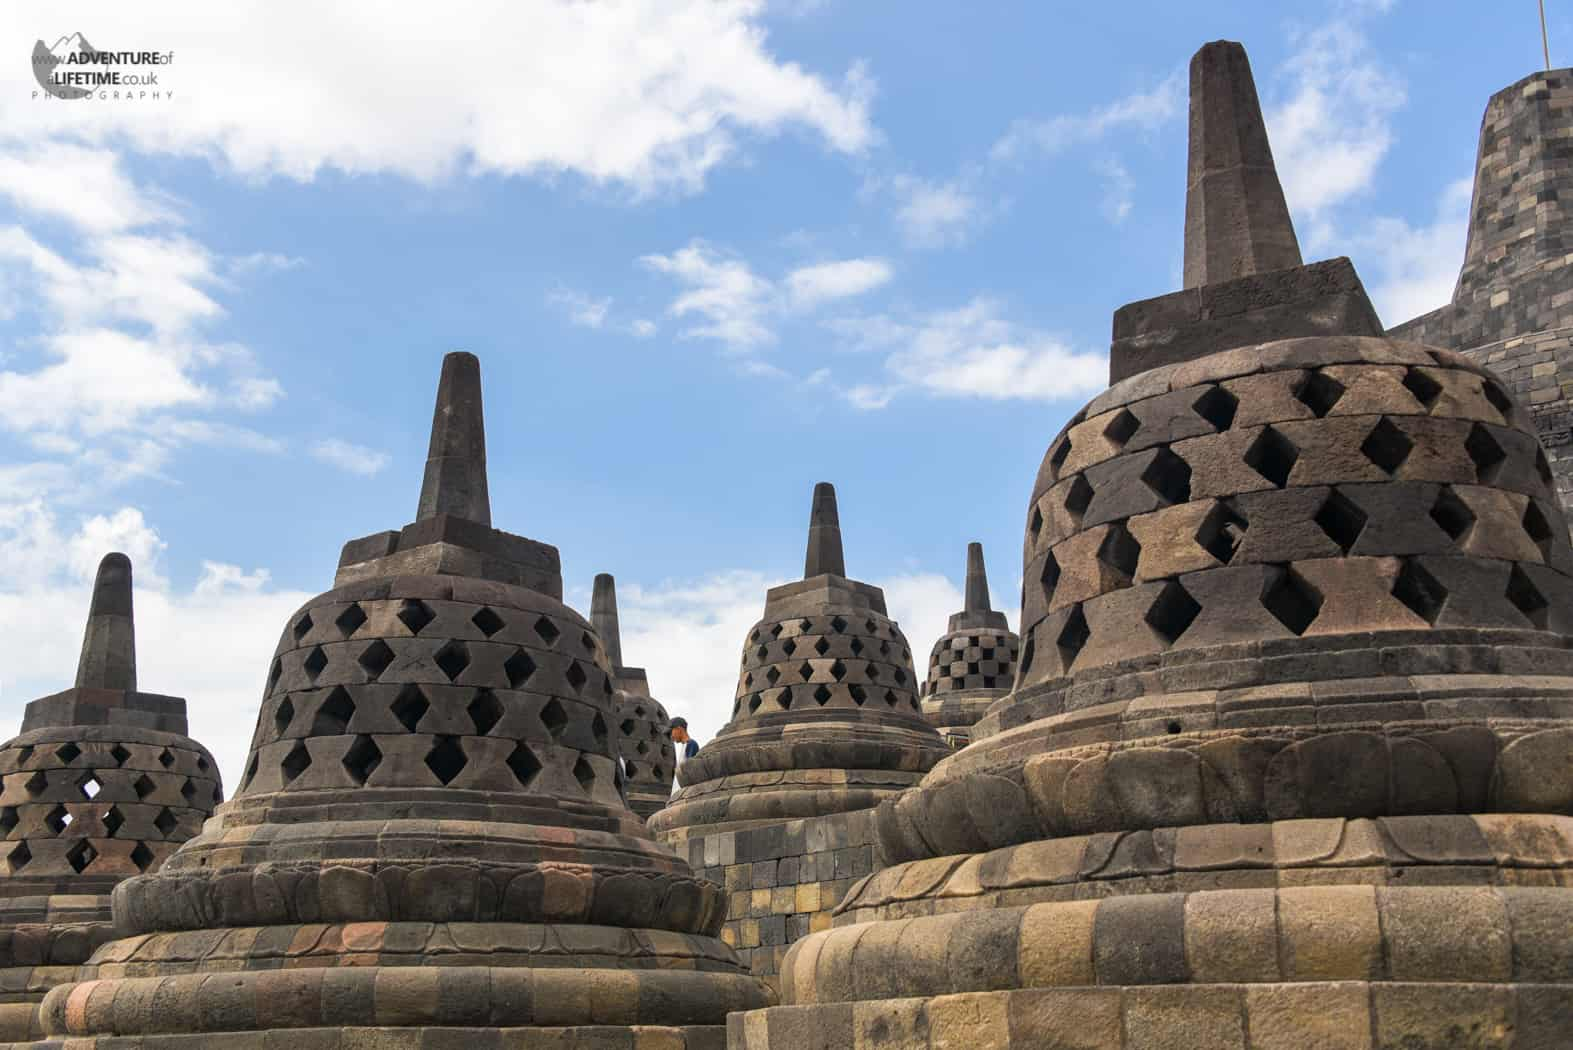 A close up shot of the stupas at Borobudur temple, Java